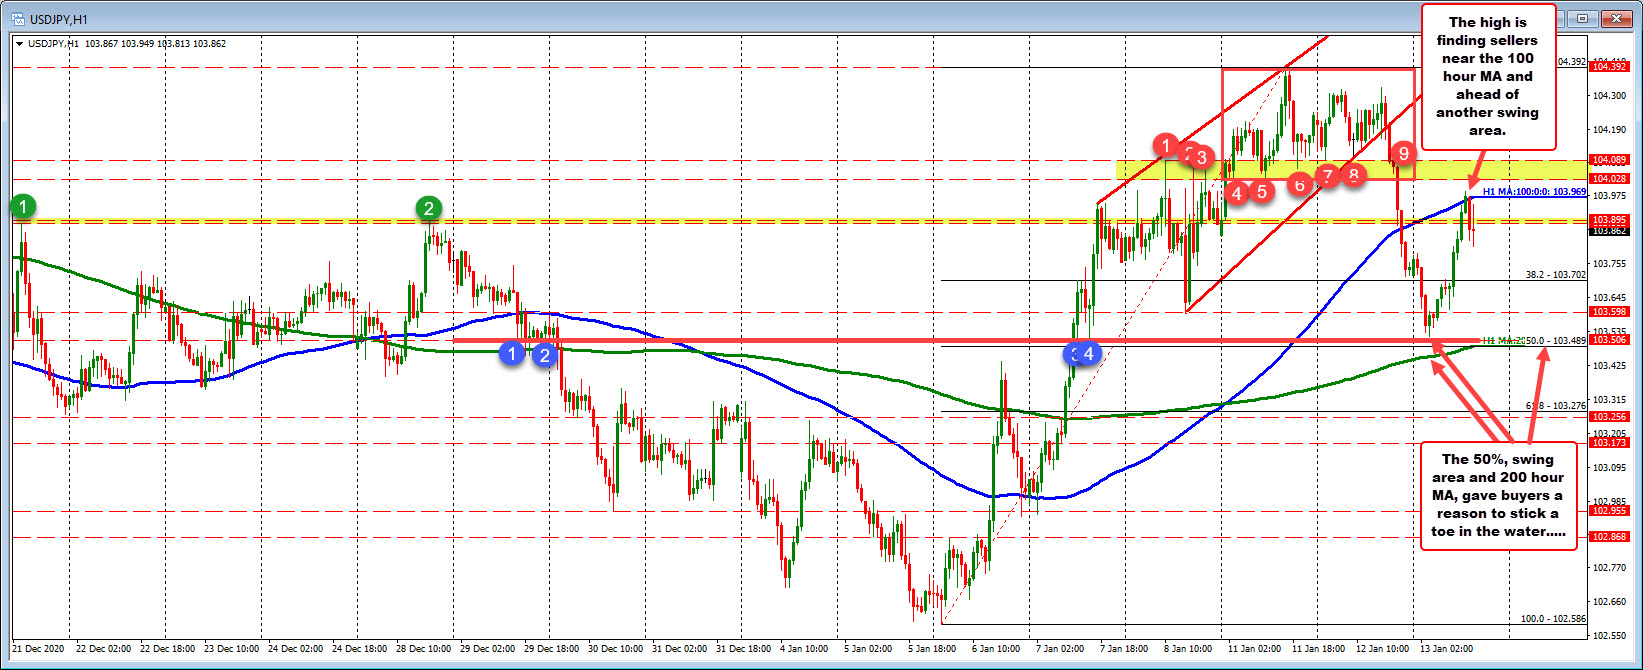 USDJPY sees sellers leaning against the 100 hour MA at 103.969